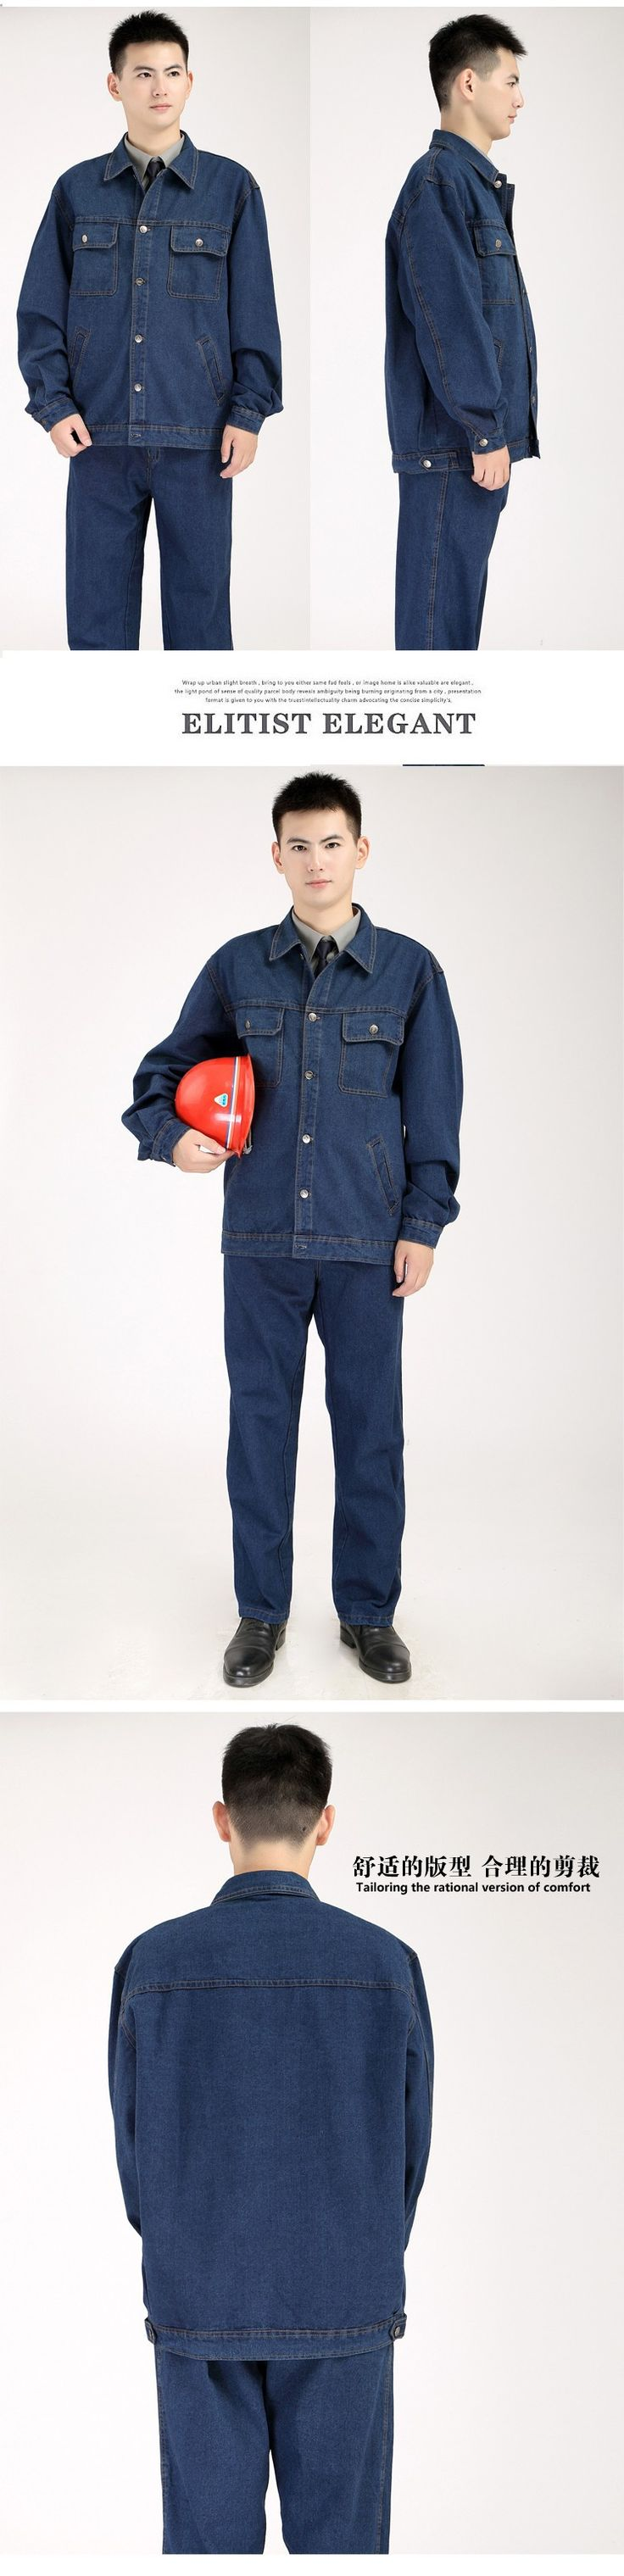 Aliexpress.com : Buy 20sets free ship The cowboy suit set male workwear protective clothing Denim overalls clothing candy tooling uniform  from Reliable uniform apron suppliers on HKGG WORK UNIFORMS STORE  | Alibaba Group